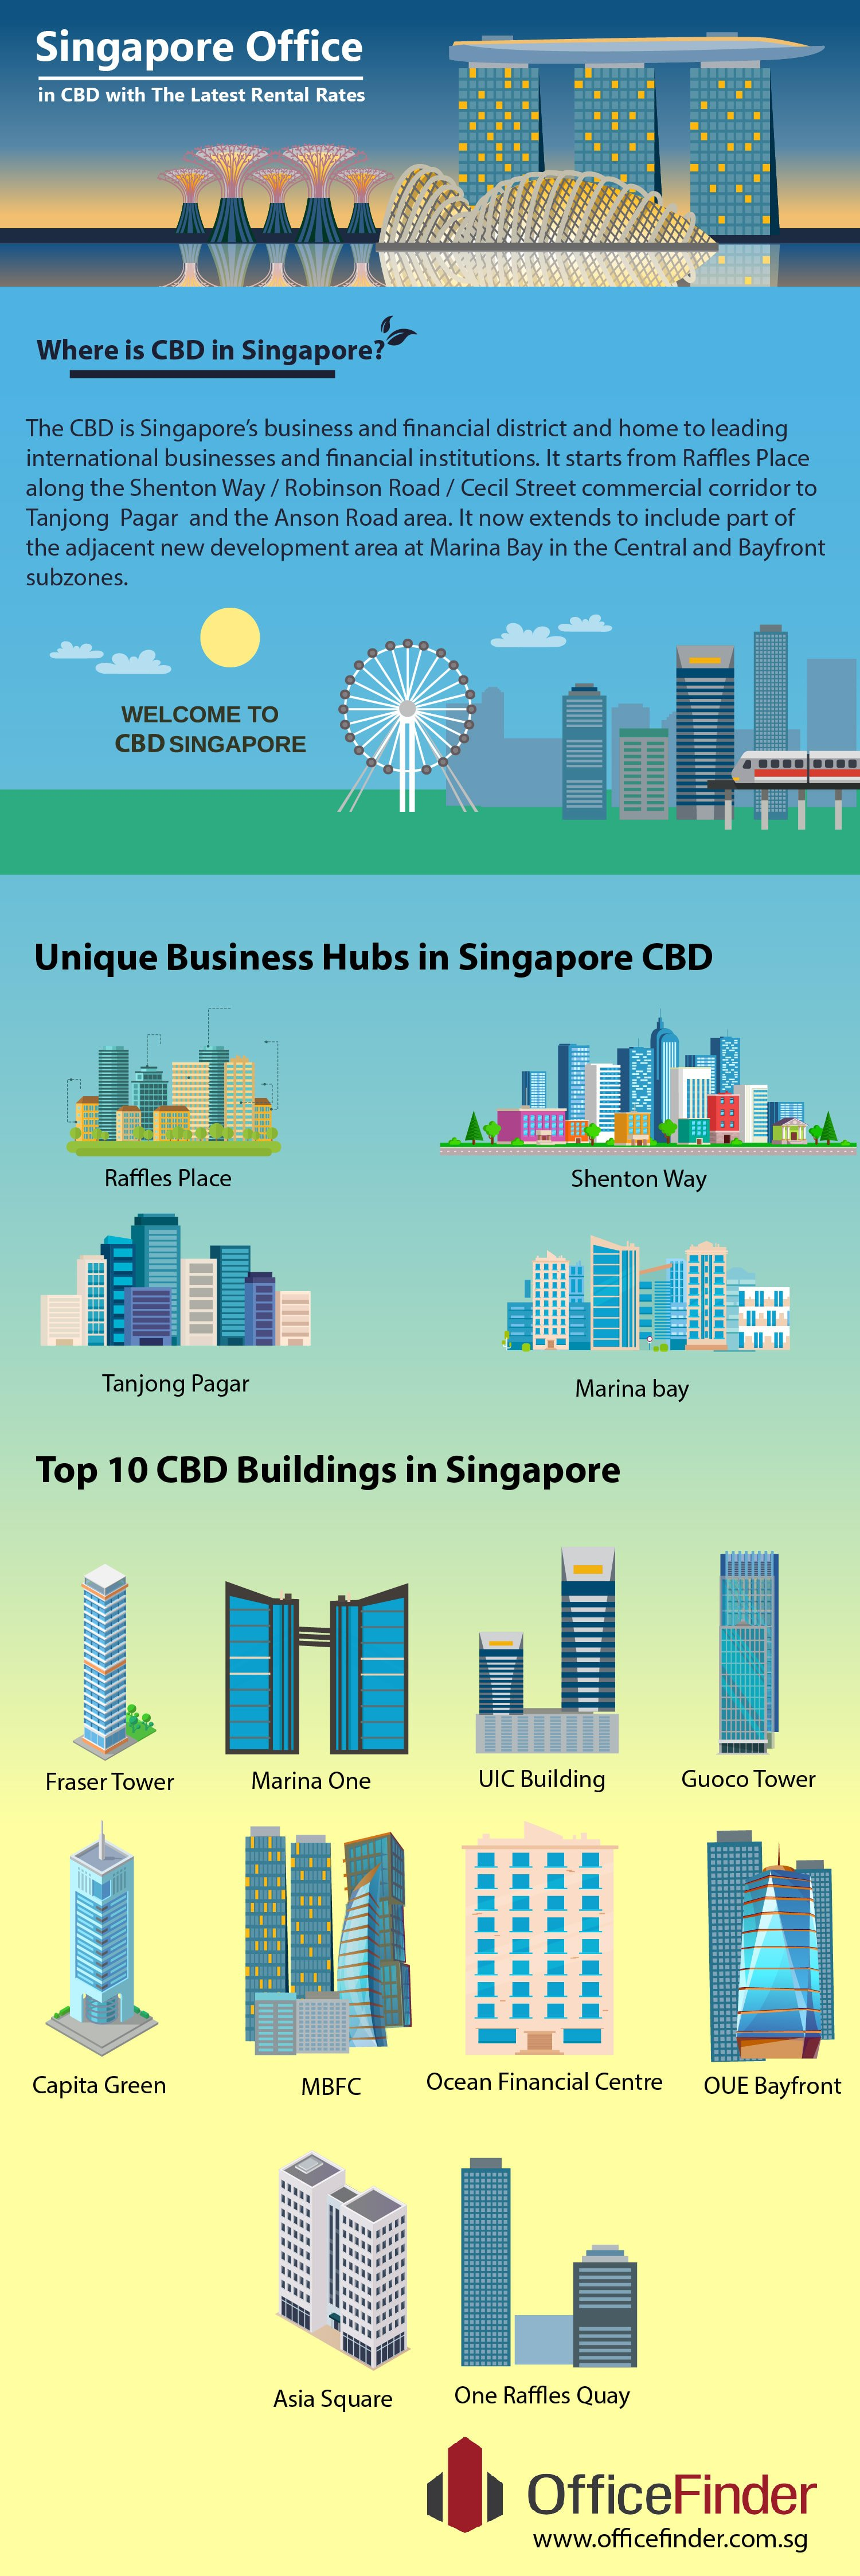 infographic - Office Space in CBD & Top CBD Buildings